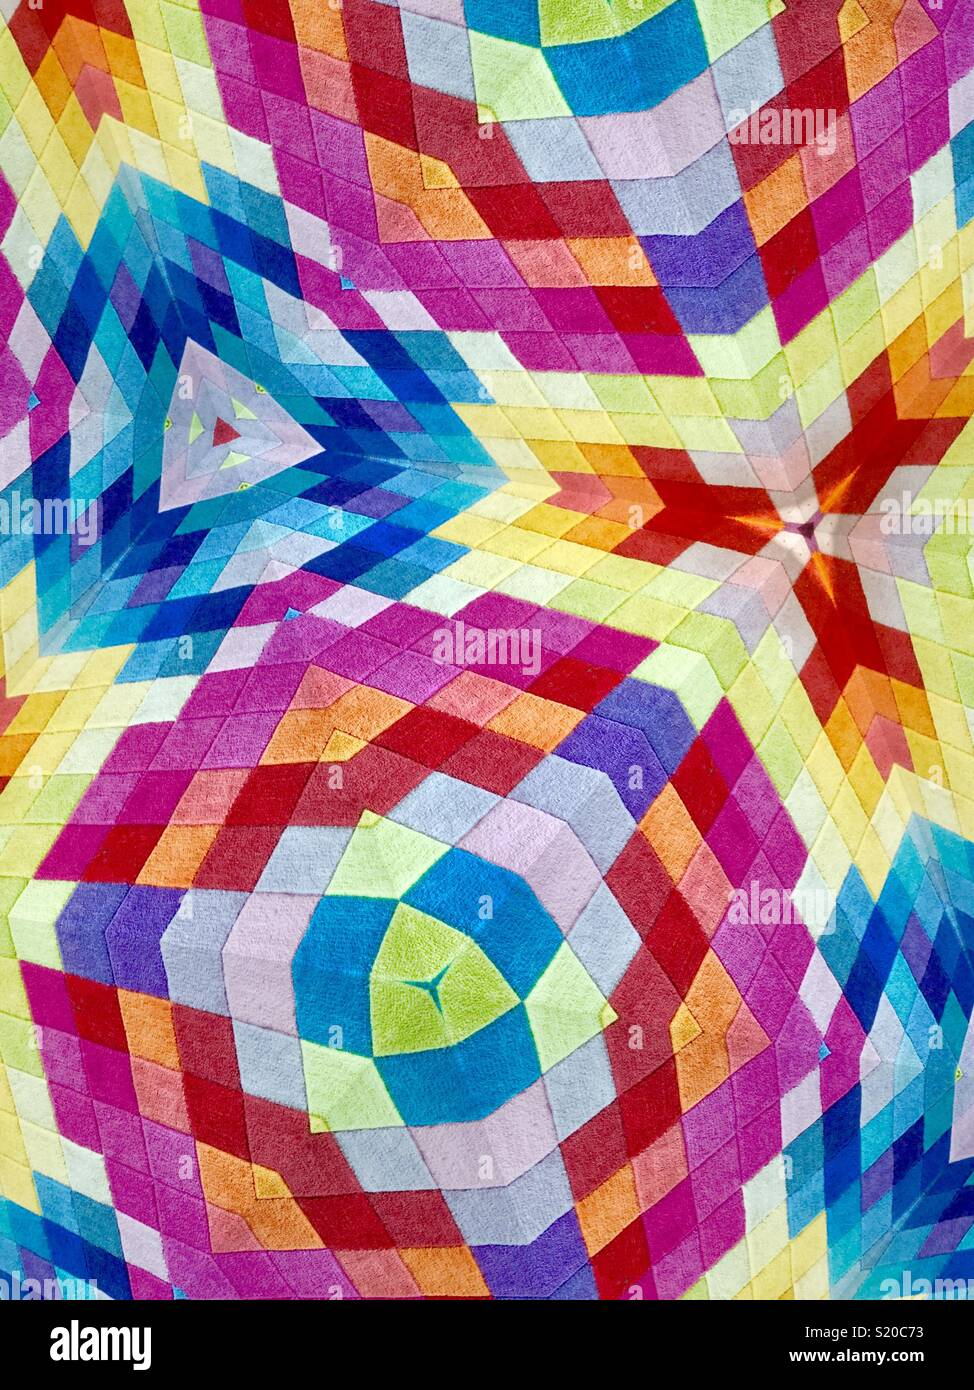 Three Dimensional Patchwork - Stock Image